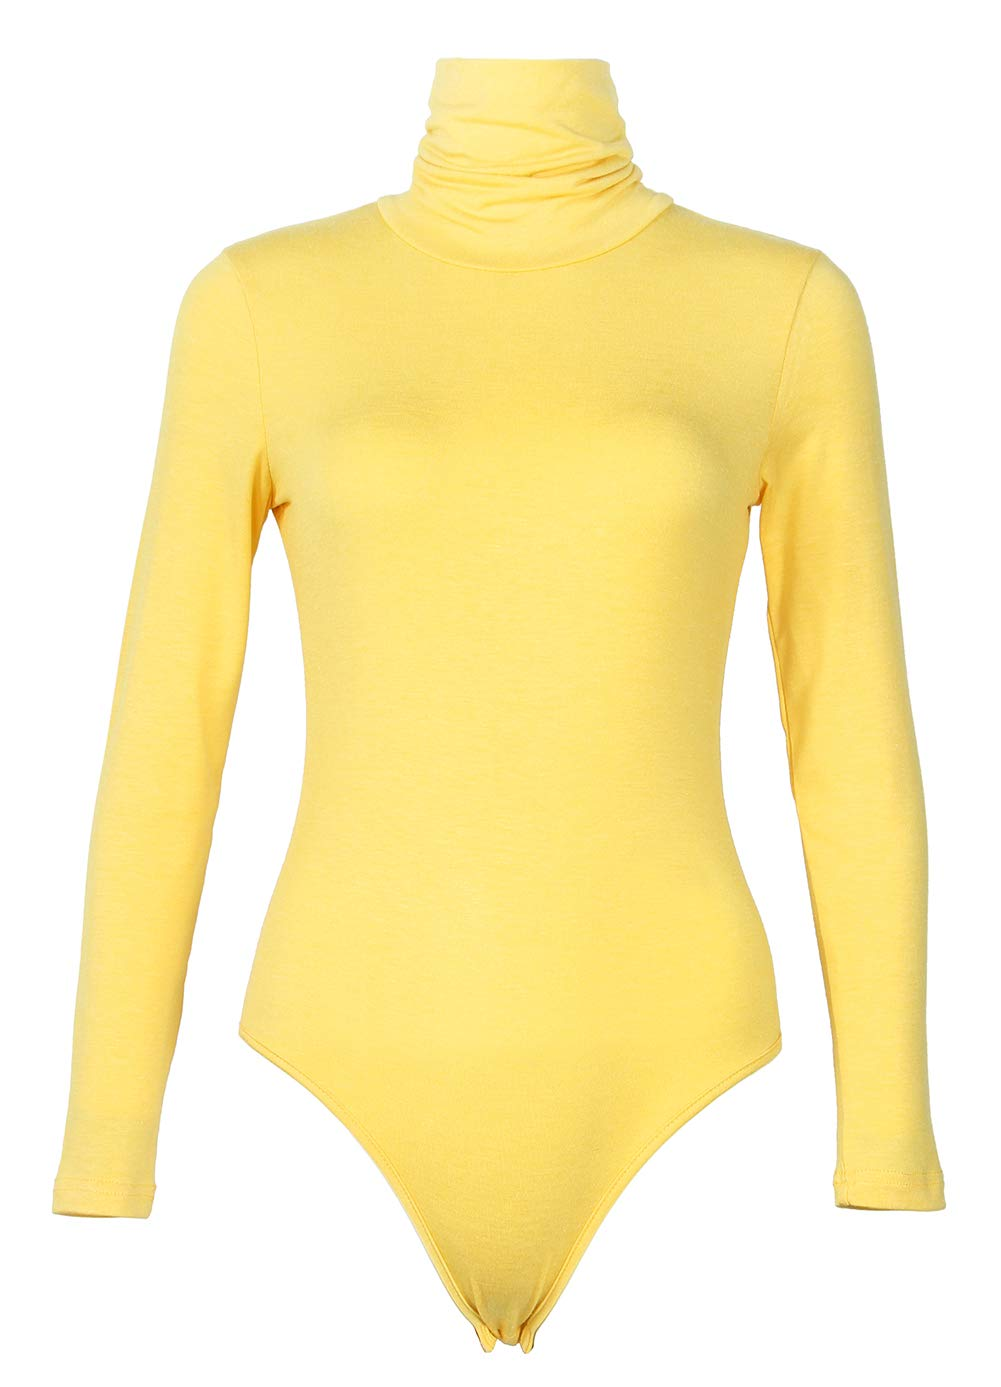 84ac3e5f33c GEMBERA Womens Stretchy Long Sleeve Turtleneck Cotton Bodysuits Shiny  Clubwear Tops Leotard Jumpsuits (Yellow